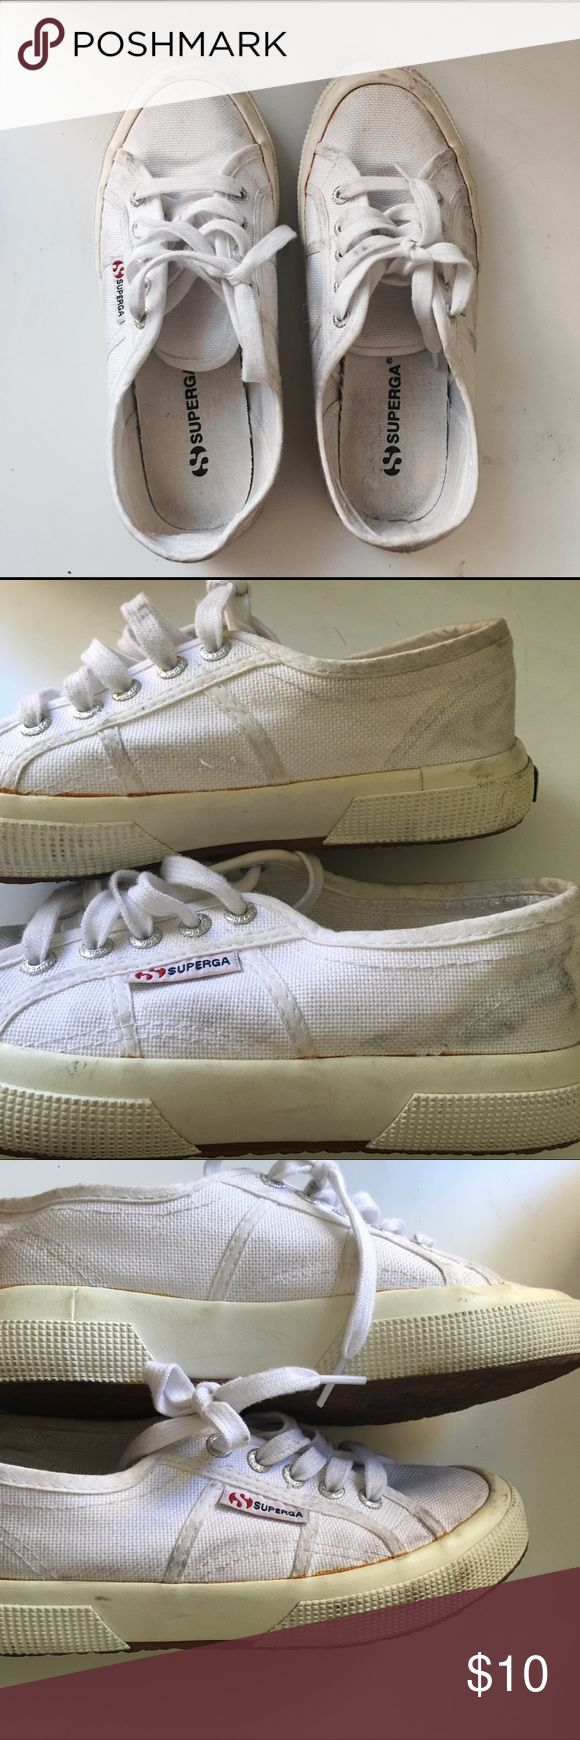 Superga white sneakers Worn in condition, kinda dirty. I didn't try washing them so price reflects. Superga Shoes Sneakers